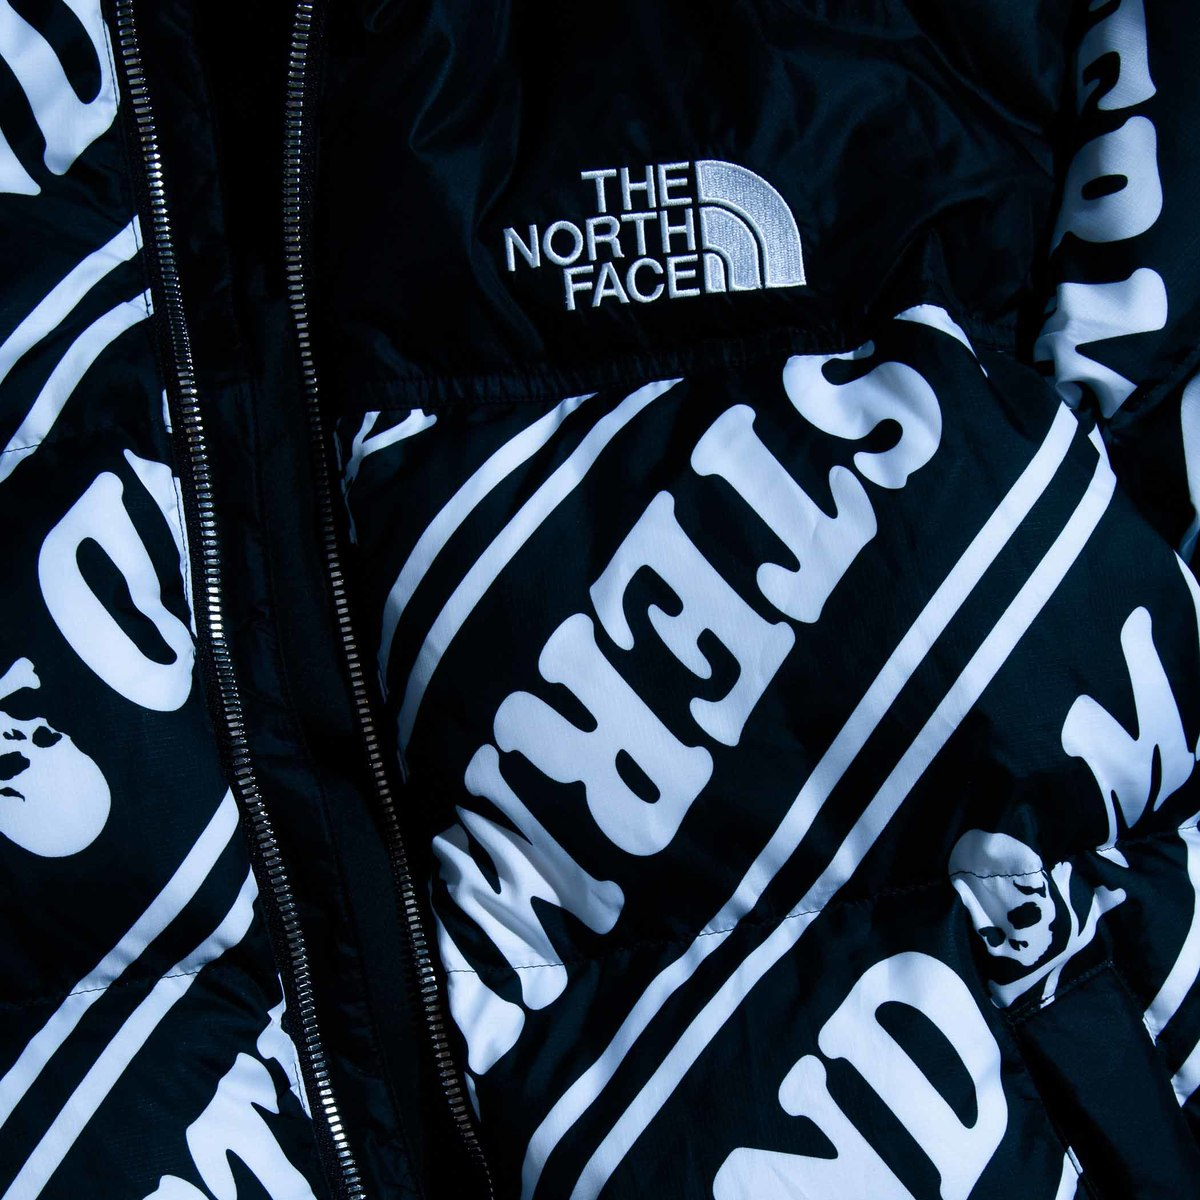 The North Face Join Mastermind In Second Collaboration